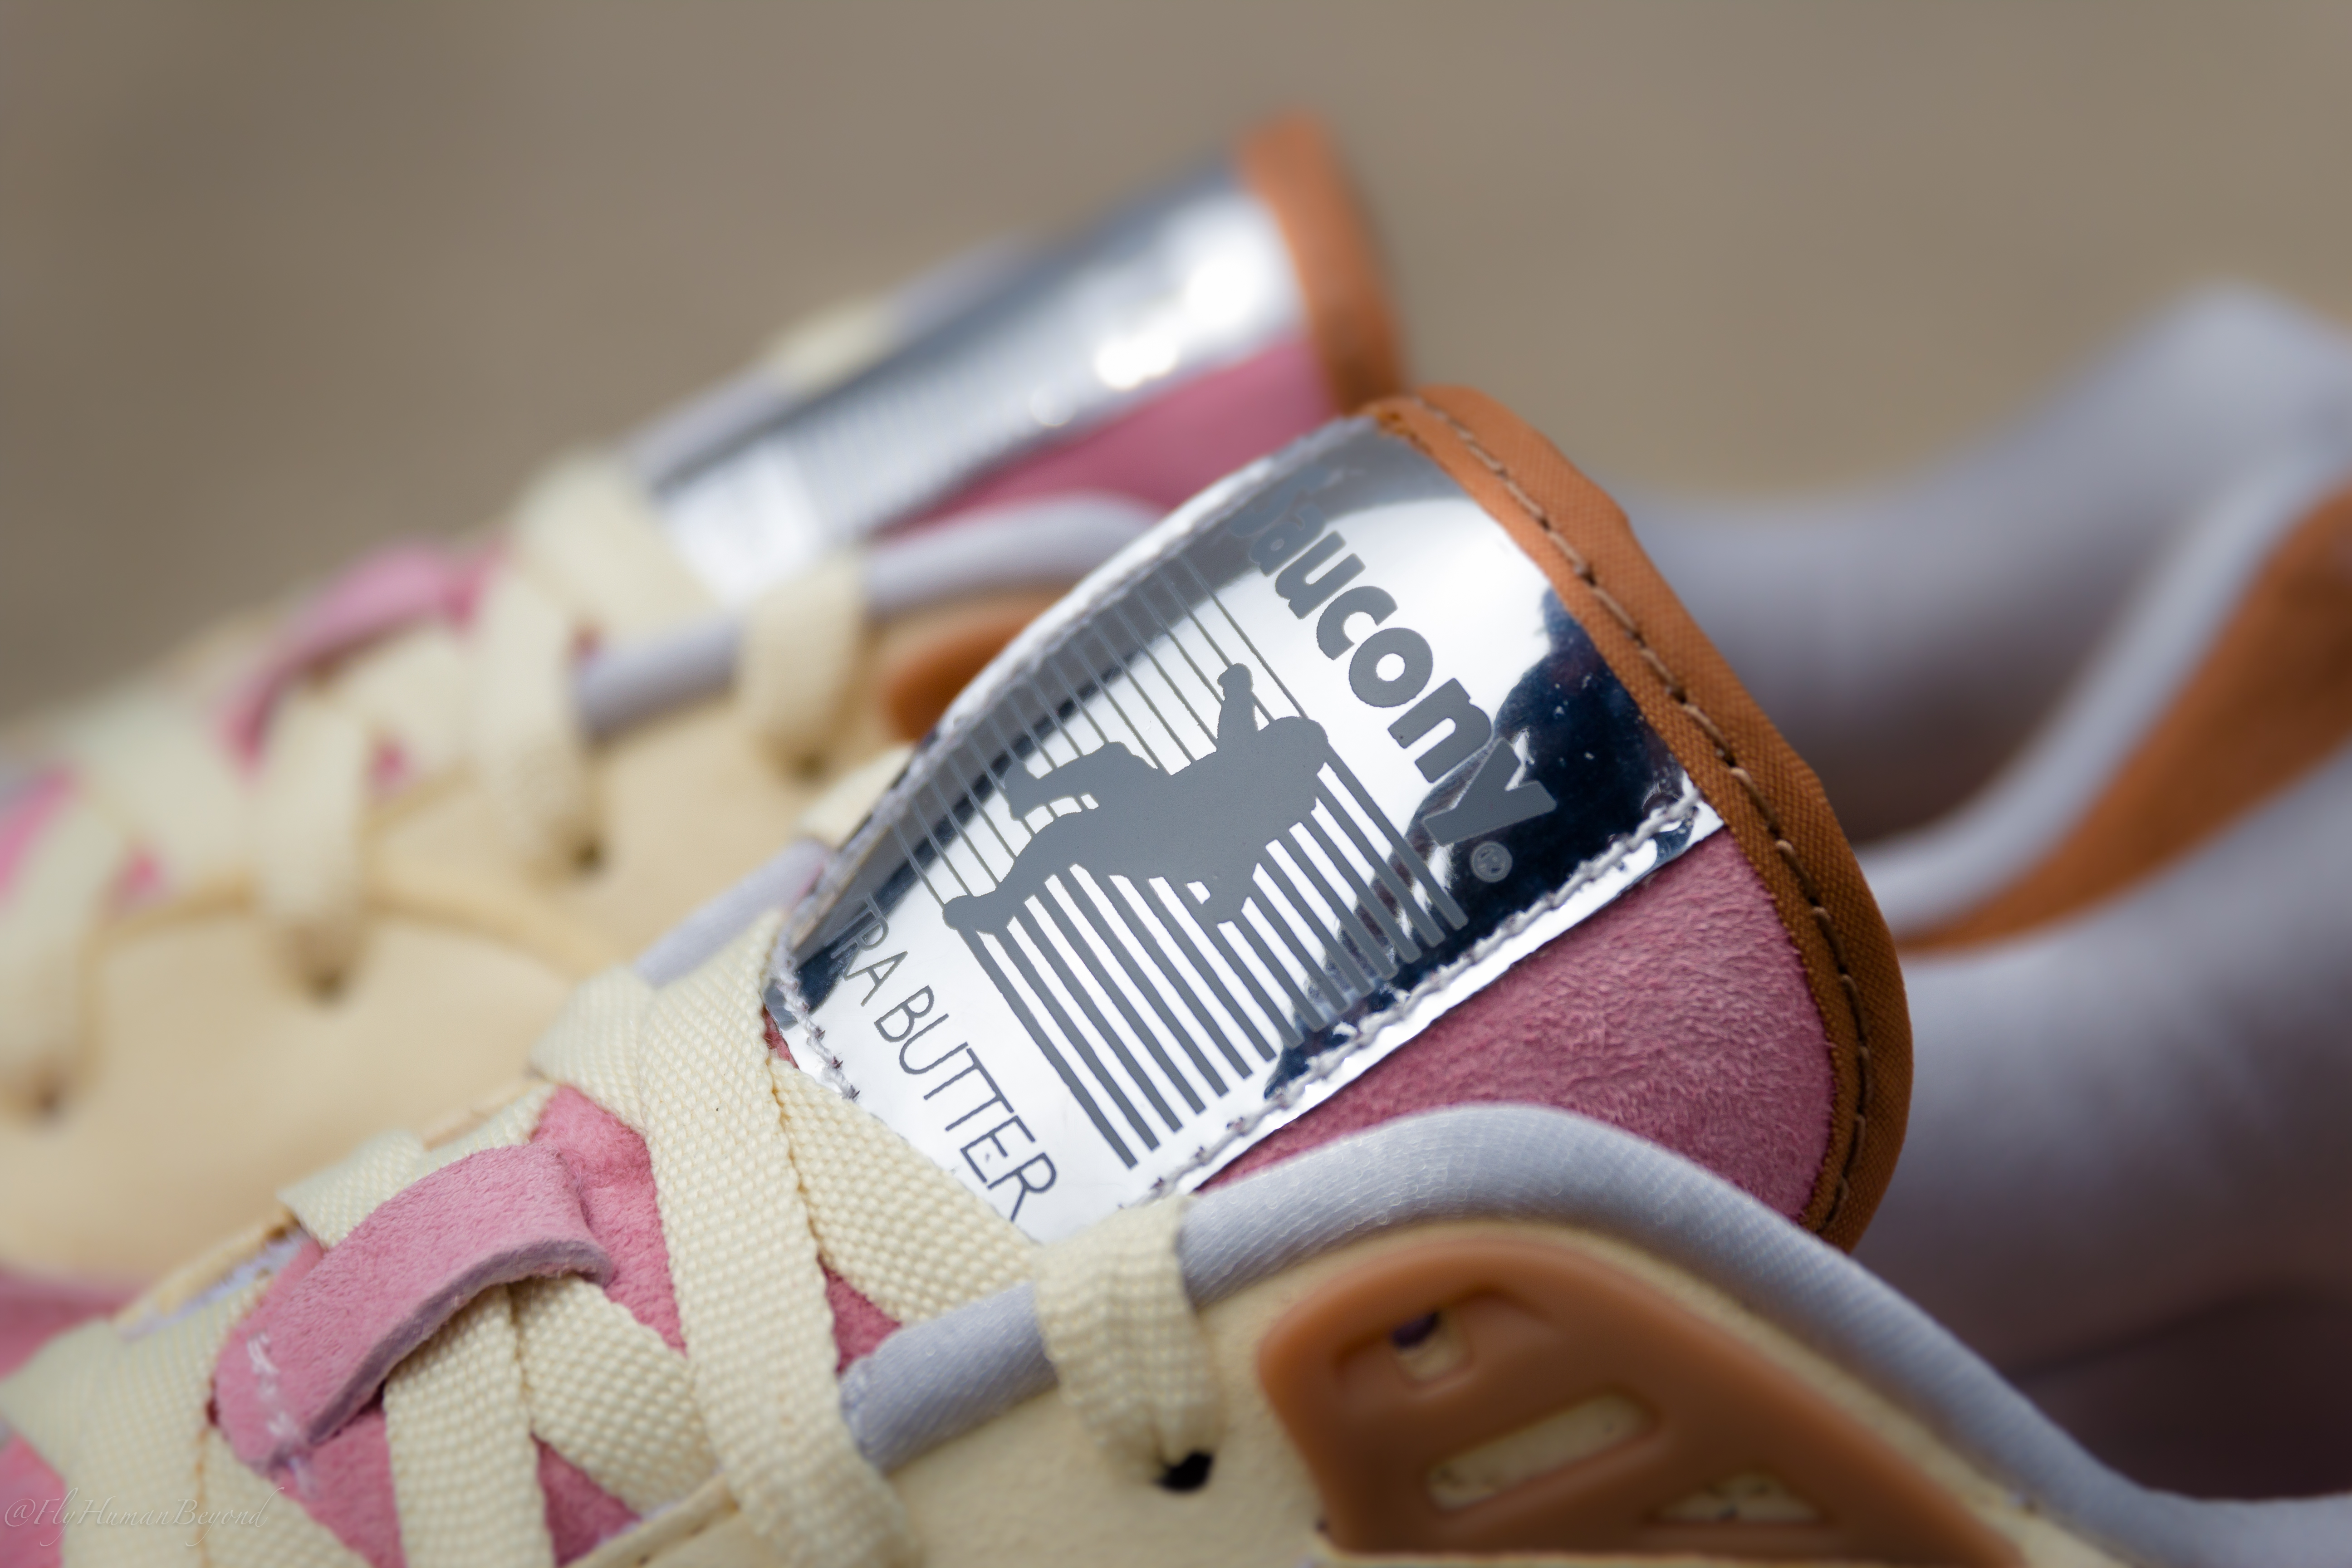 SPACE SNACK-3 ... Extra Butter X Saucony Shadow Master space Snack Mens  Size 10 DS 5000 G9 eBay Saucony Shadow Master Extra Butter ... 70146-1 ... 0d81dc0b5